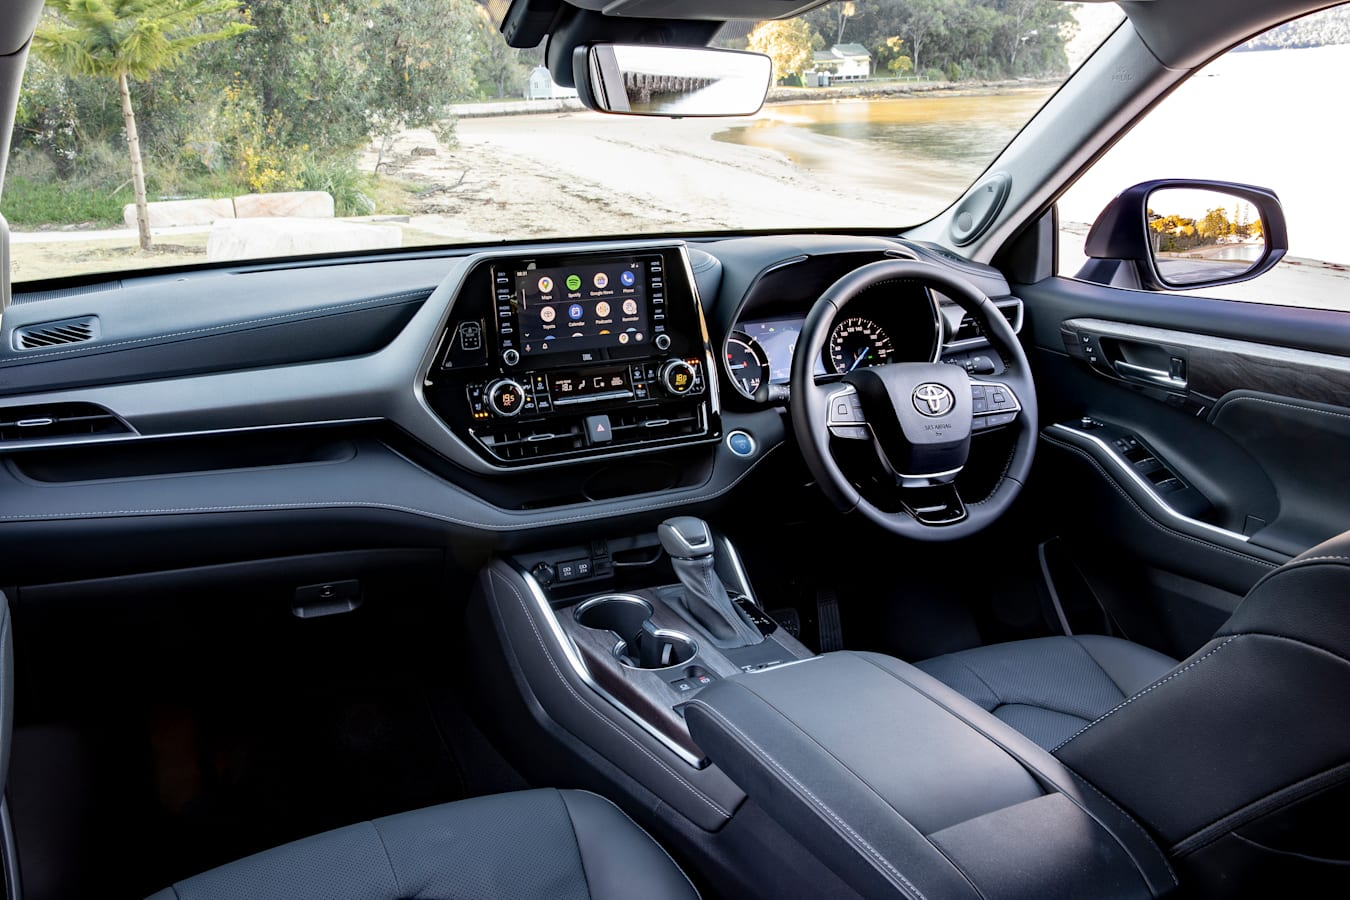 20 2021 Toyota Kluger 210521 P 1681